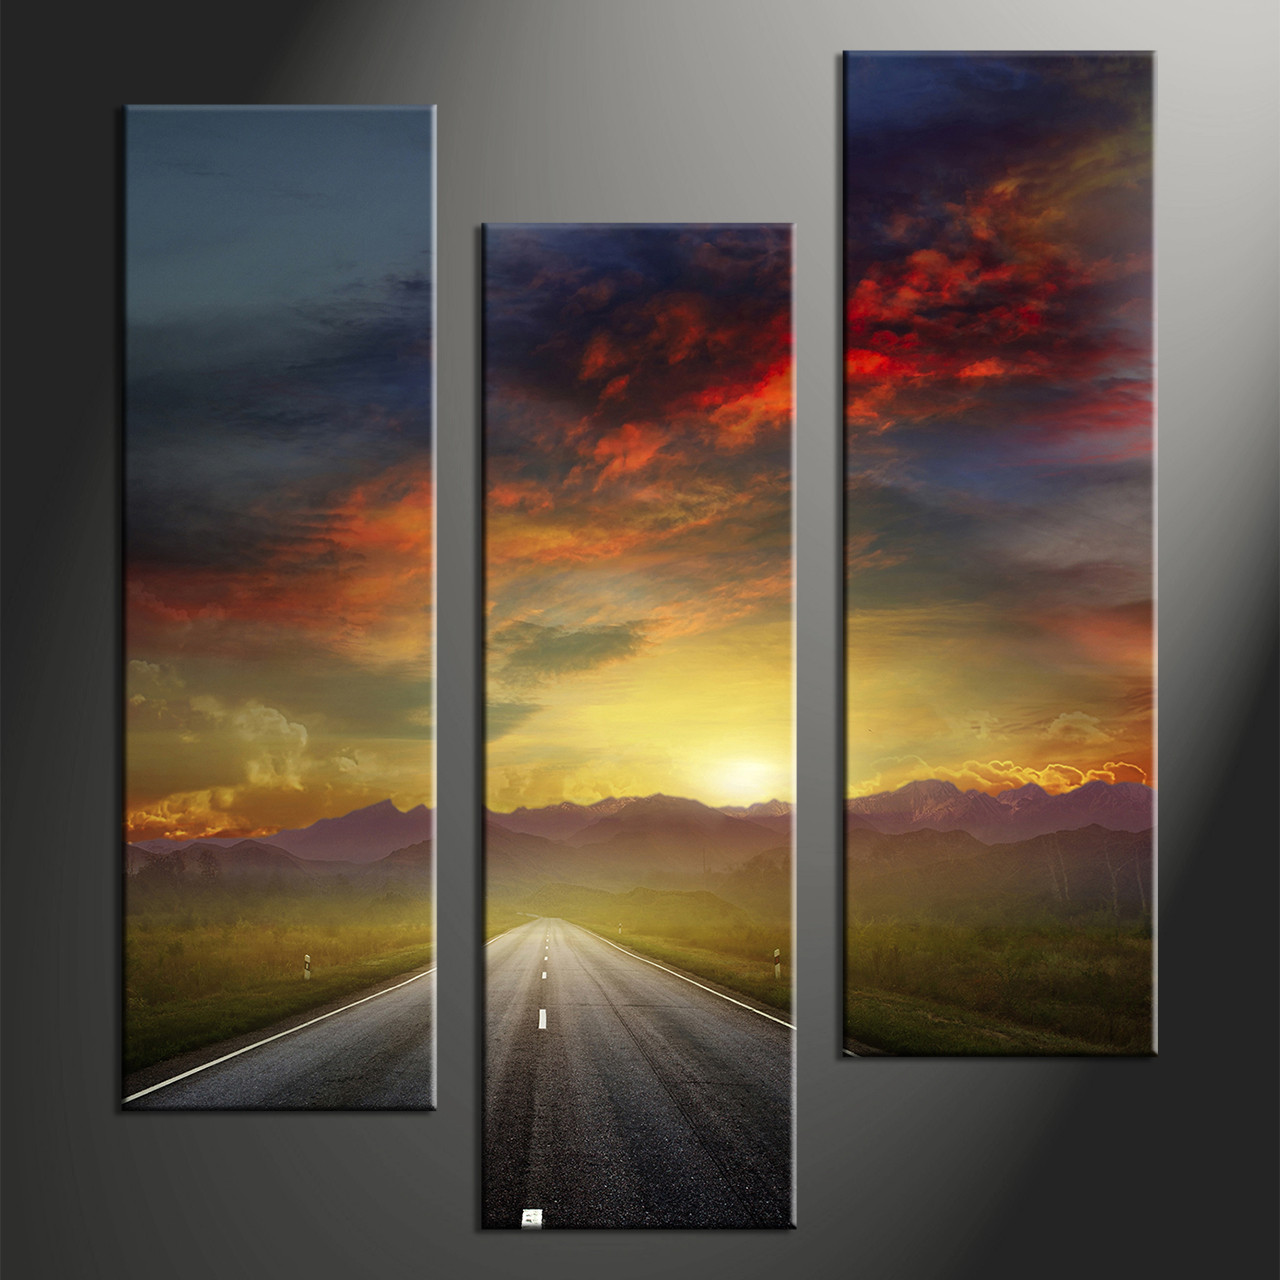 Large Framed Wall Art New York City Landscape Sunset: Triptych Colorful Sunset Landscape Mountain Multi Panel Canvas